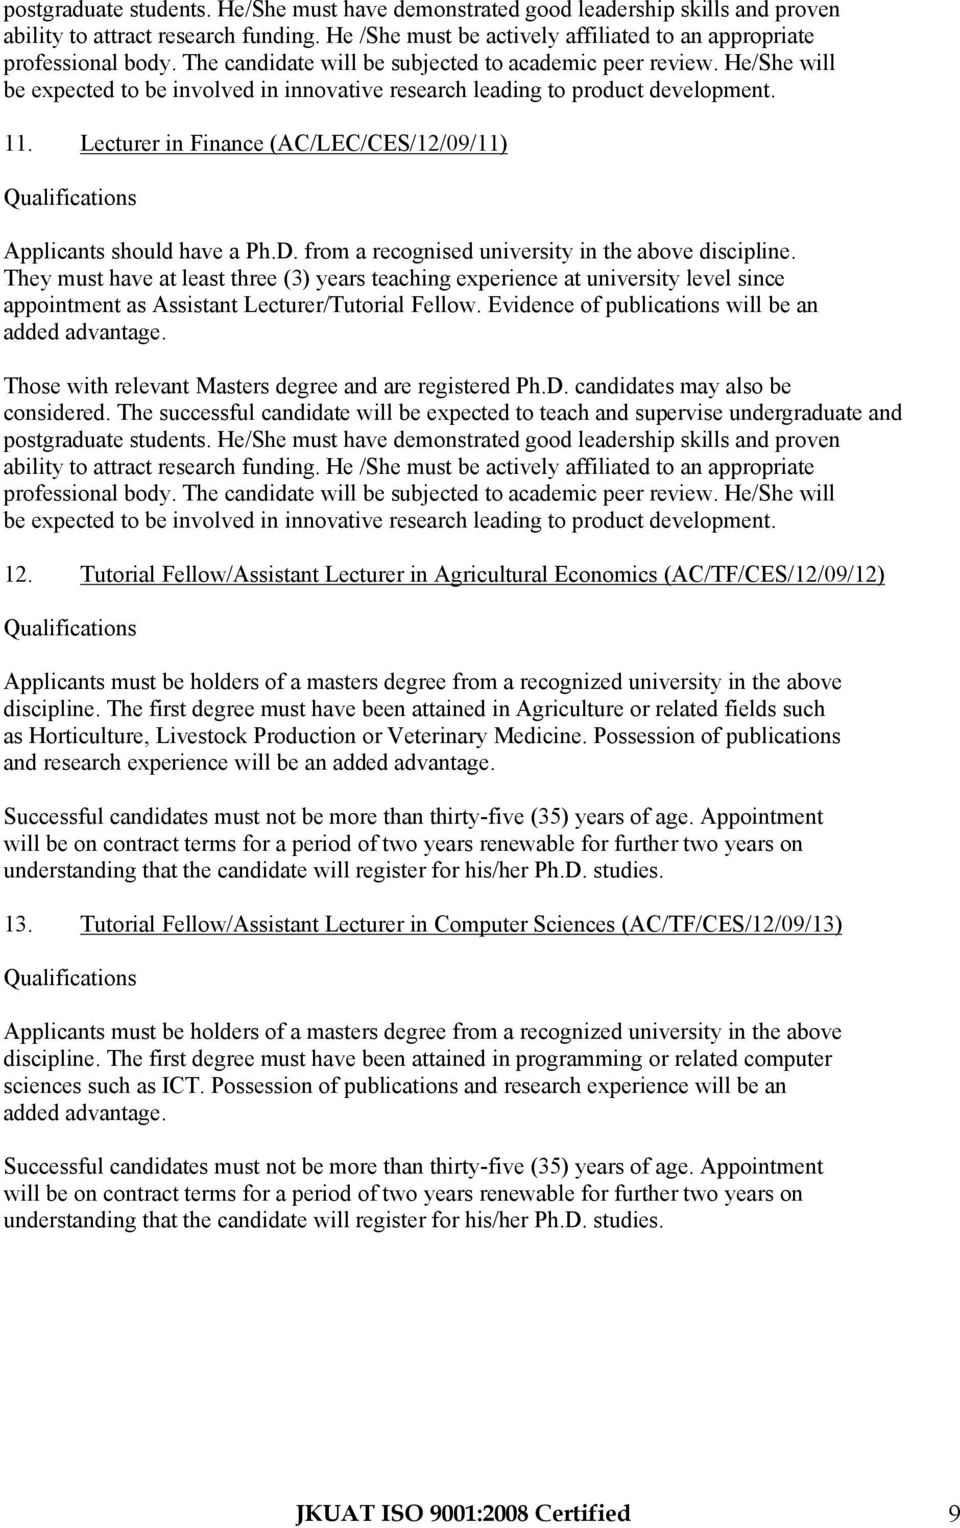 Lecturer in Finance (AC/LEC/CES/12/09/11) Applicants should have a Ph.D. from a recognised university in the above discipline.